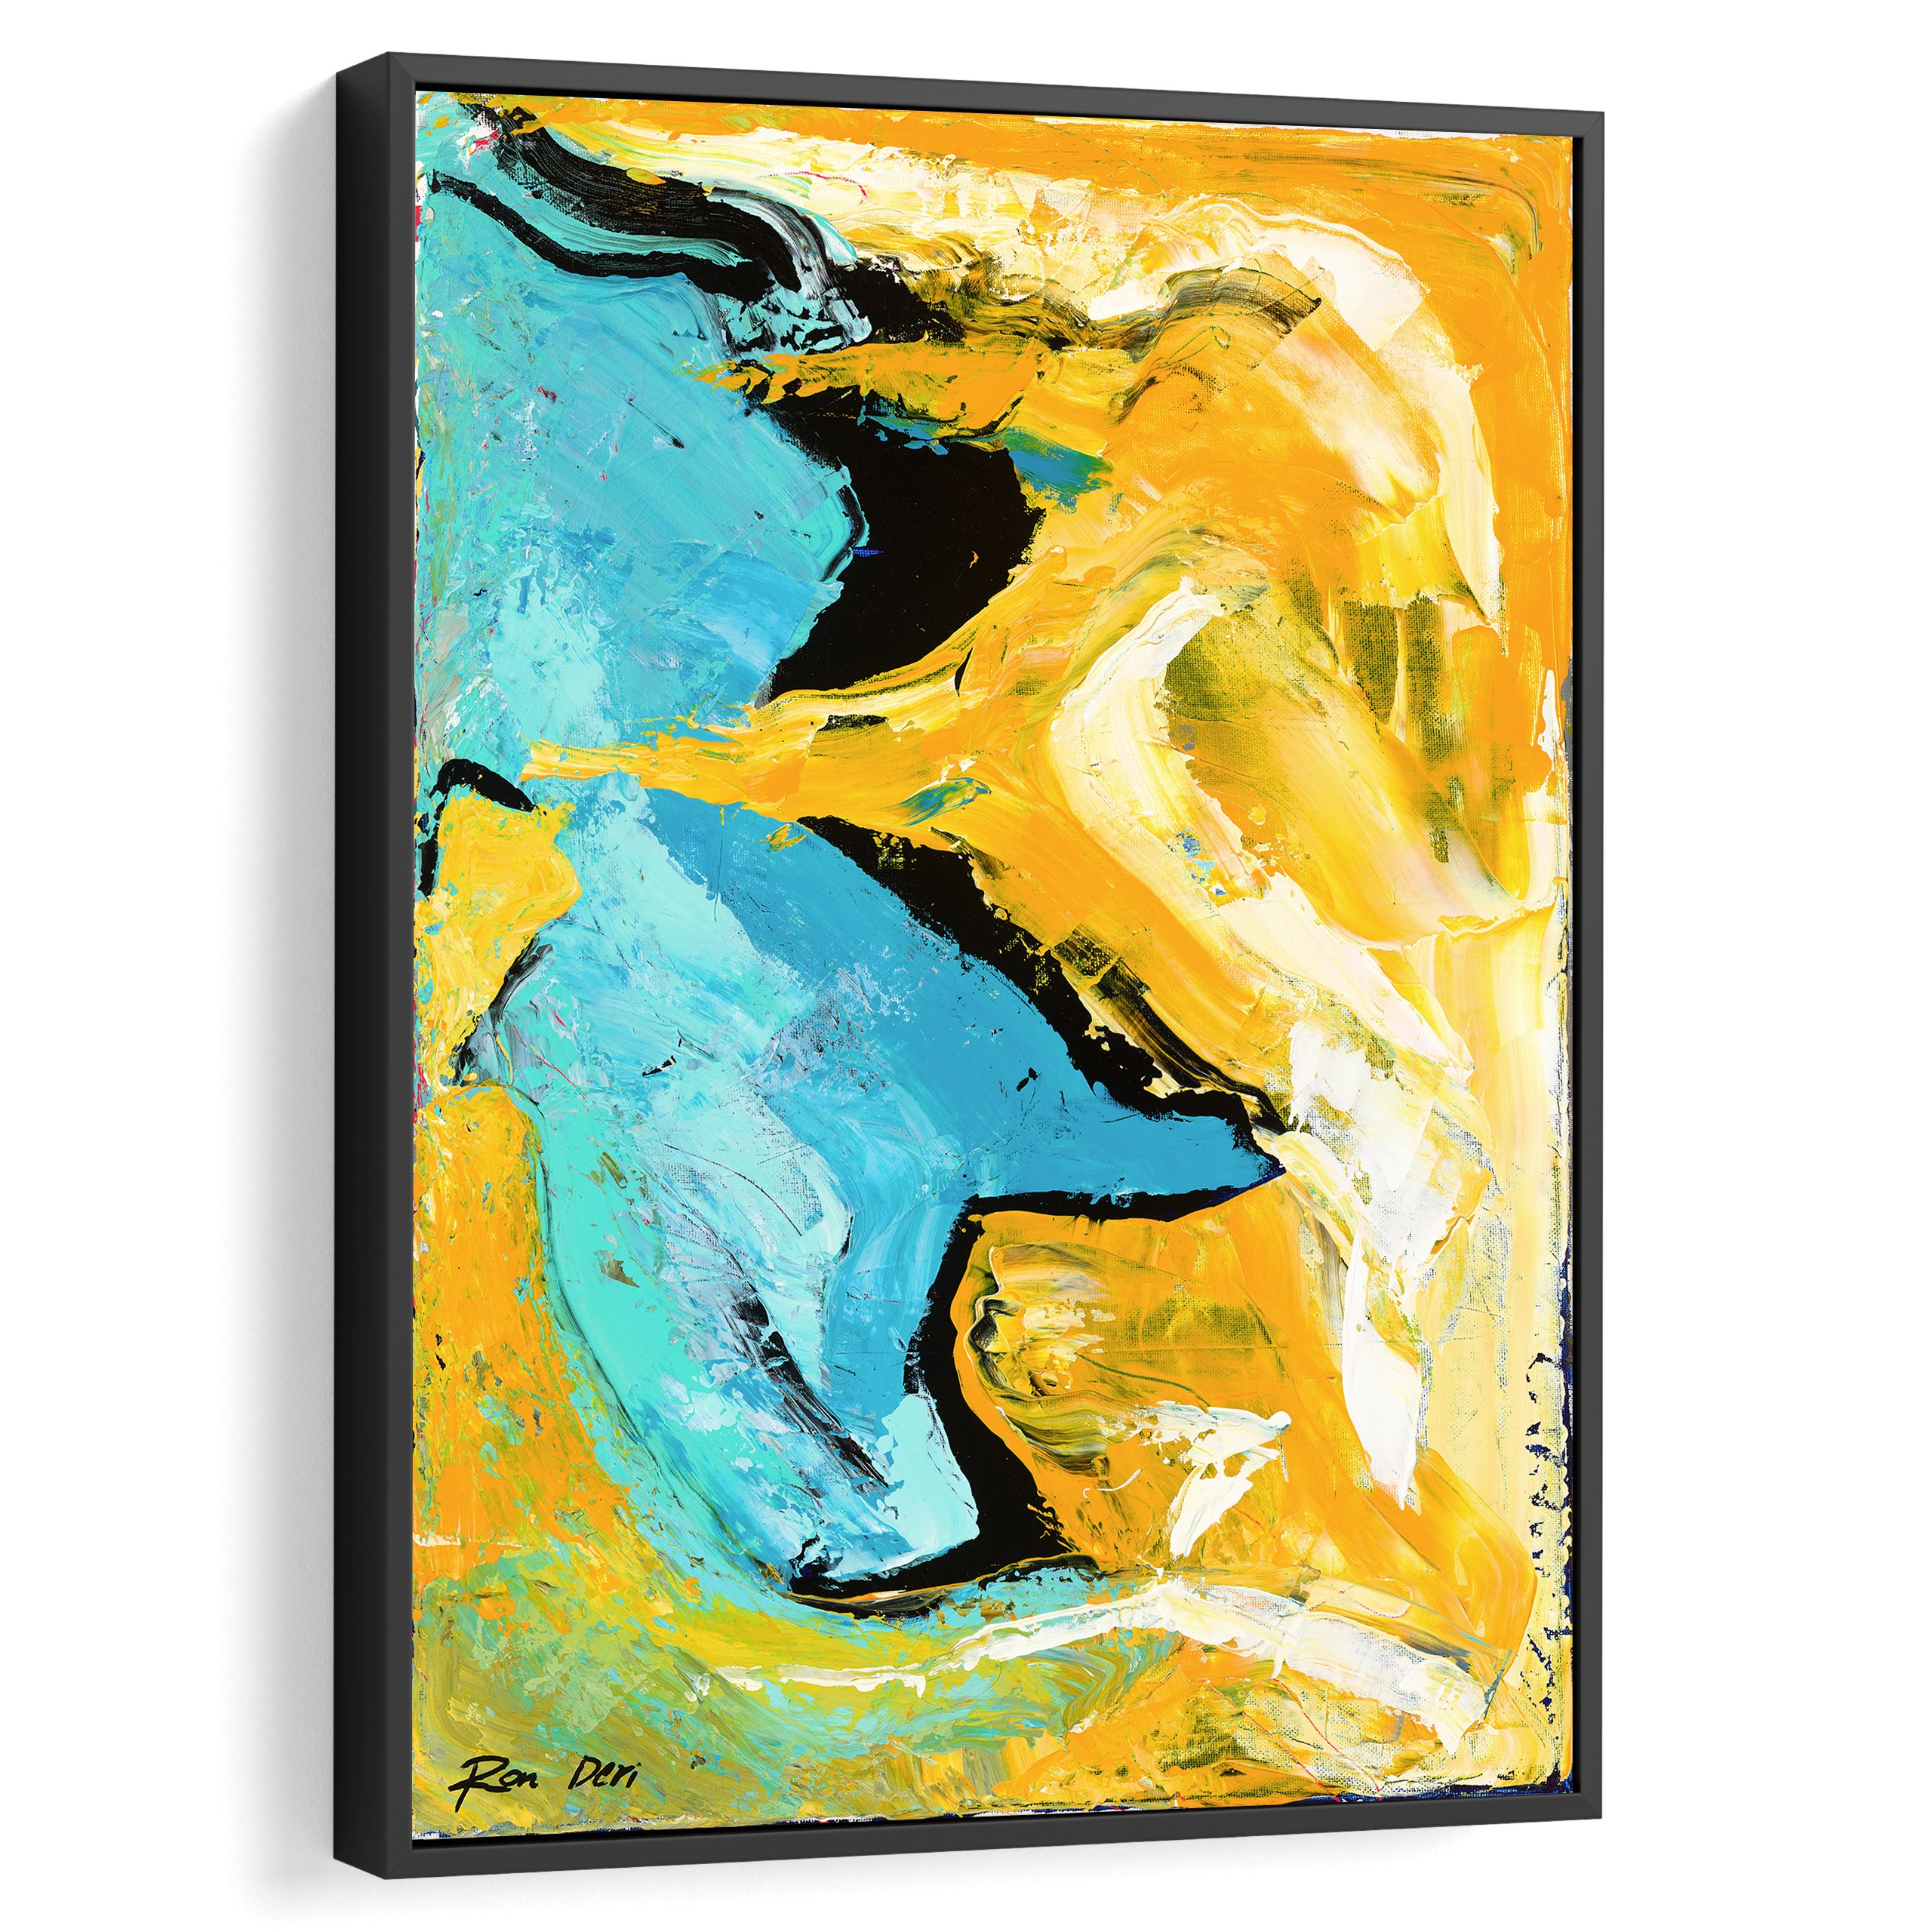 Gold and blue abstract art for interior design and wall decor